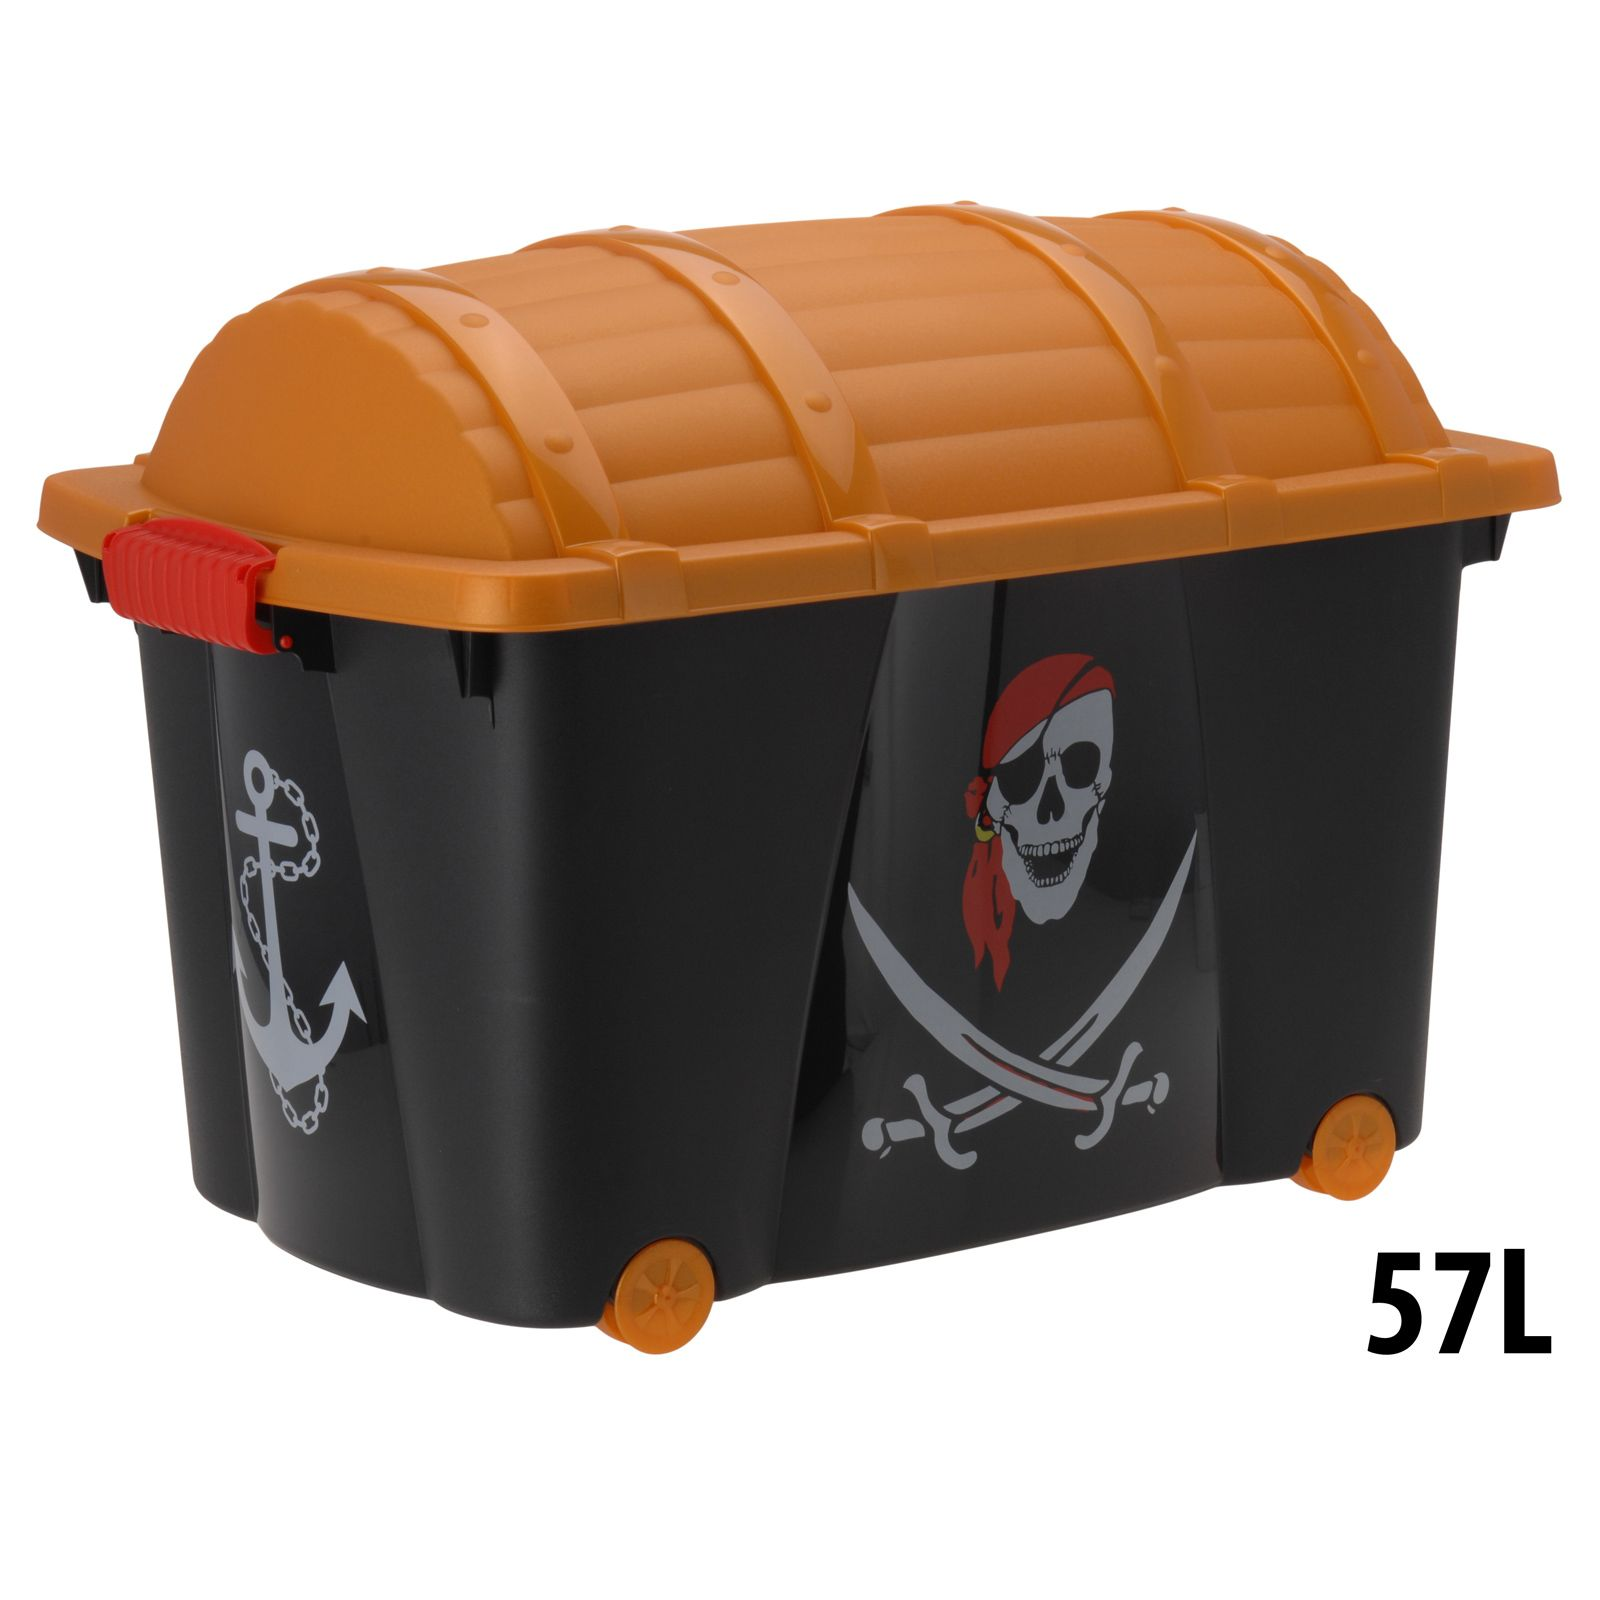 Container Plastic Box Toys | Pirate Childrens Plastic Storage Container Toy  Chest Box With Wheels .